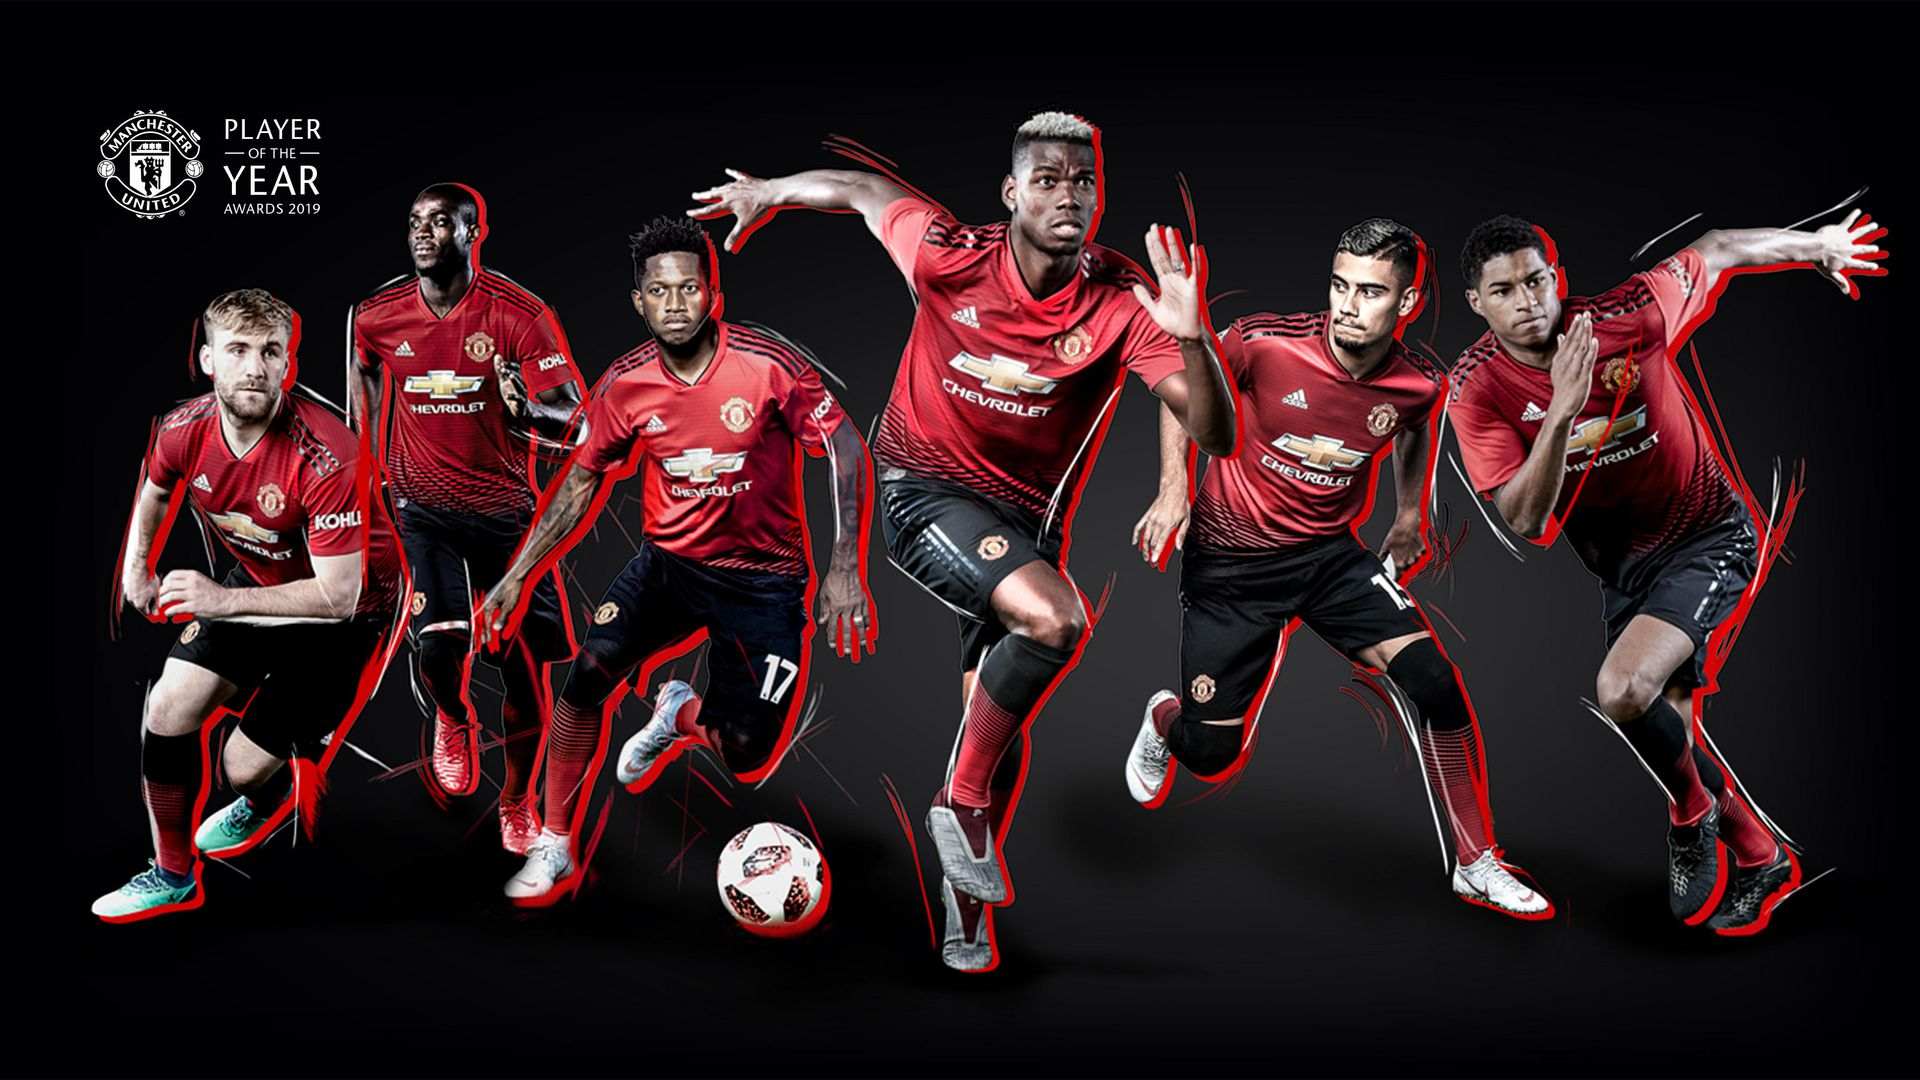 how to vote in man utd player of the year awards 2019 manchester united how to vote in man utd player of the